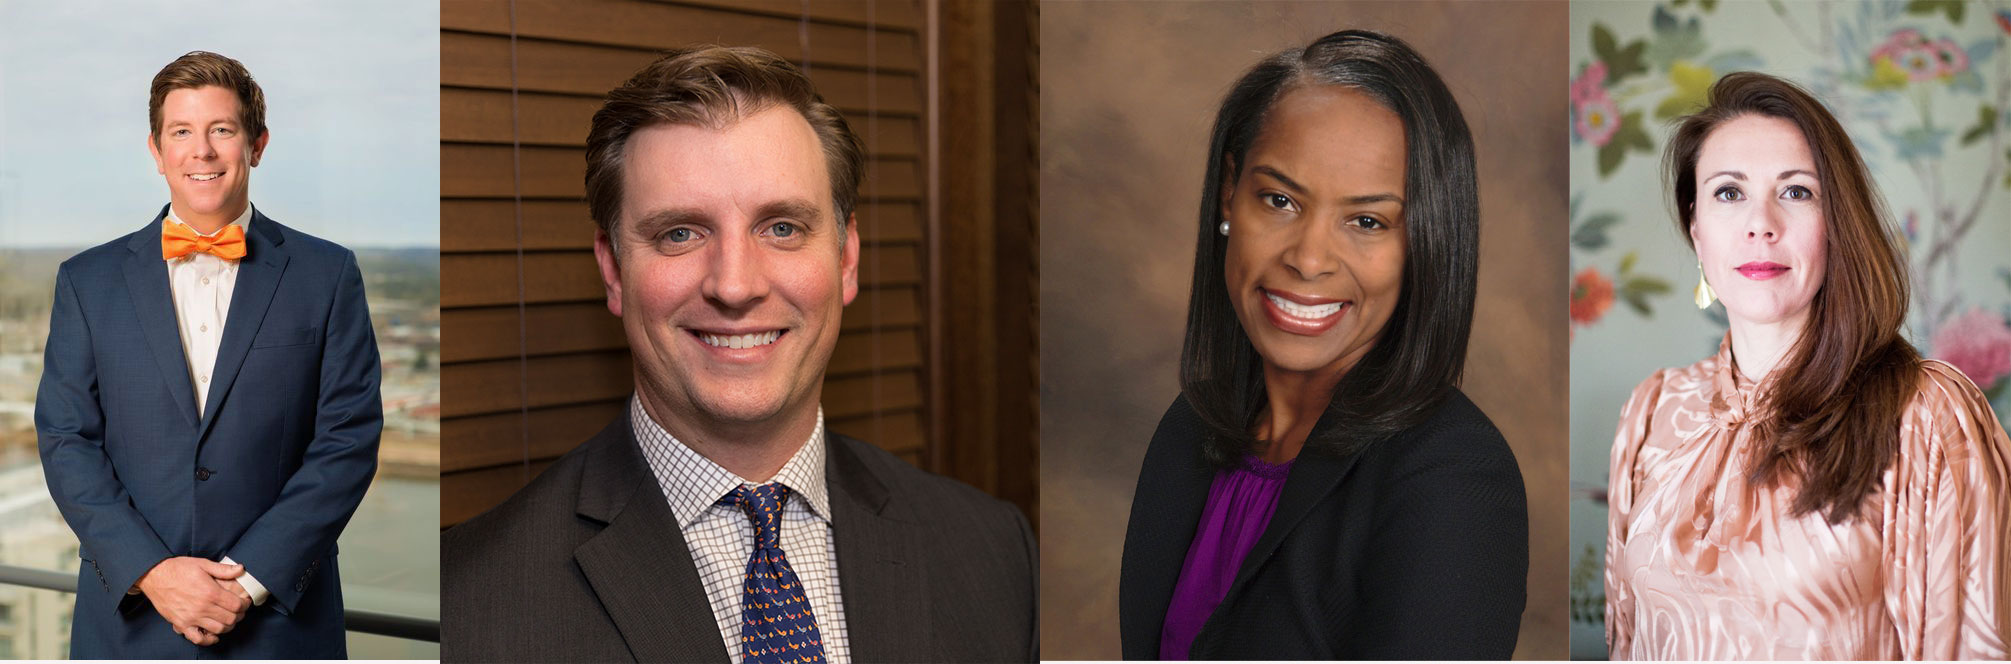 The new board members include Ben Bailey, a partner at TMB Capital Partners, Alec Gaines, a partner at Steel, Wright, Gray PLLC, LaShannon Spencer, CEO of Community Health Centers of Arkansas, and Erin Wood, owner and director of Et Alia Press.